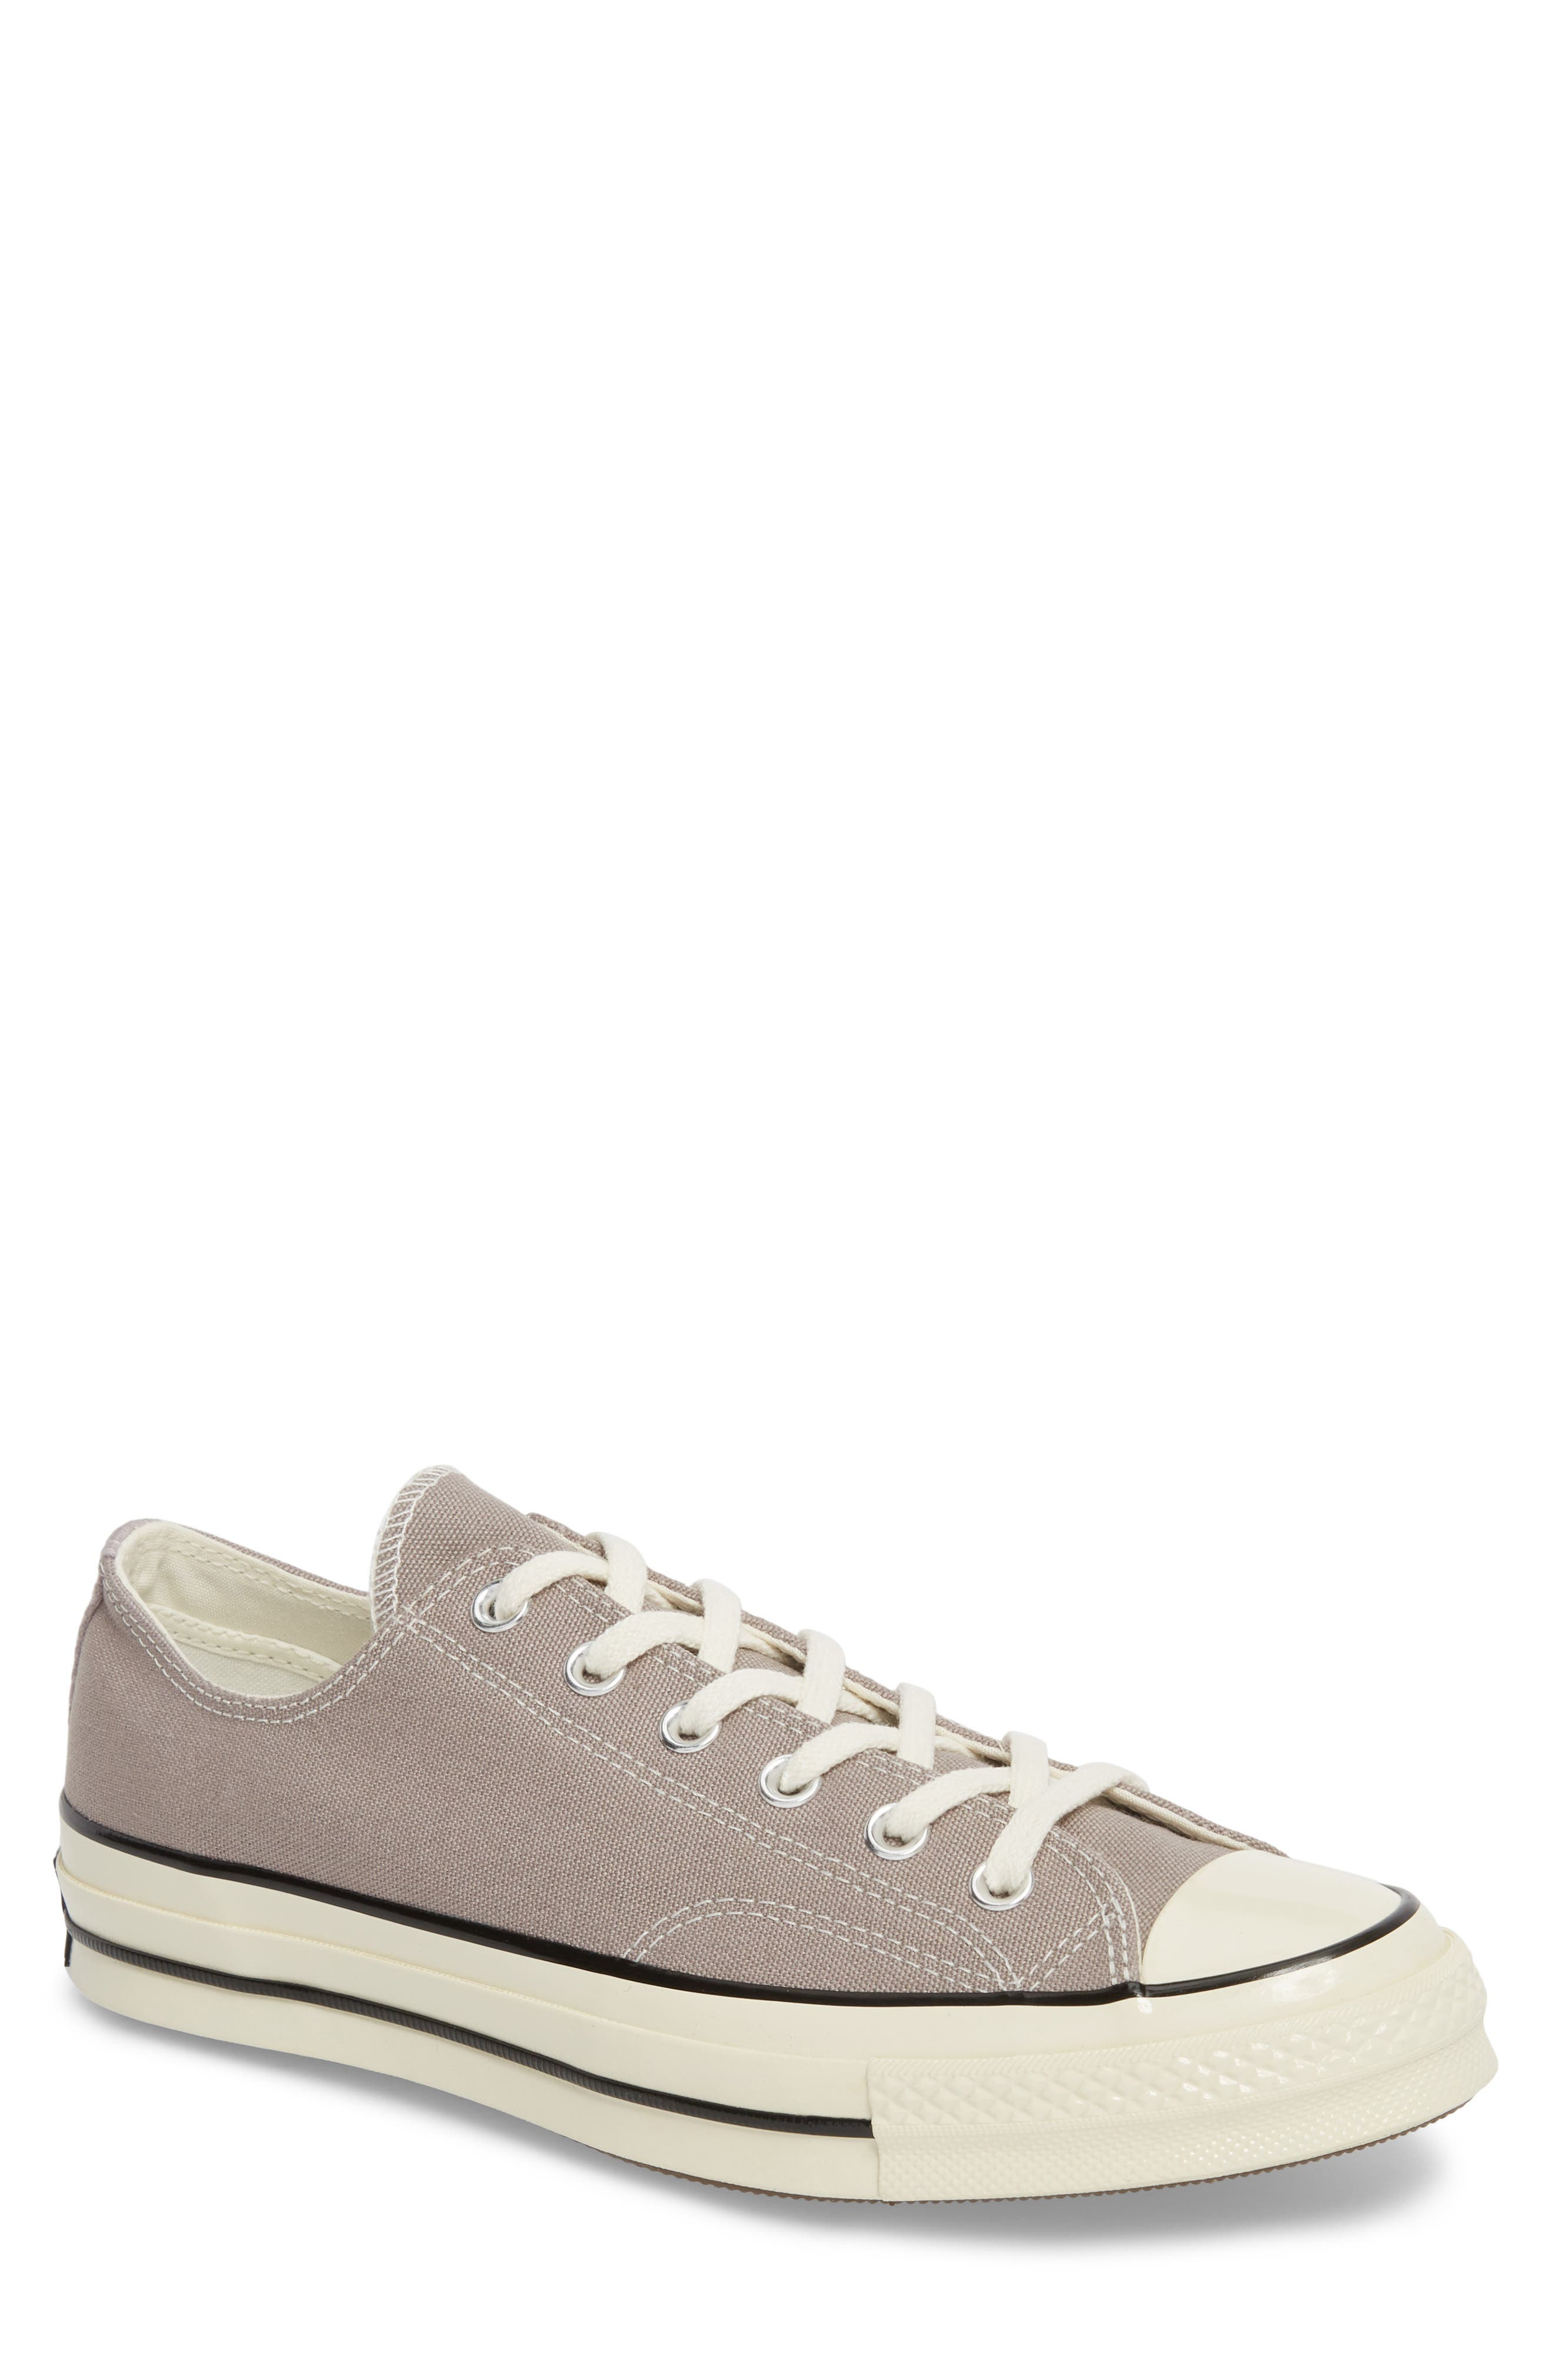 Chuck Taylor<sup>®</sup> All Star<sup>®</sup> 70 Heritage Sneaker,                             Main thumbnail 1, color,                             035